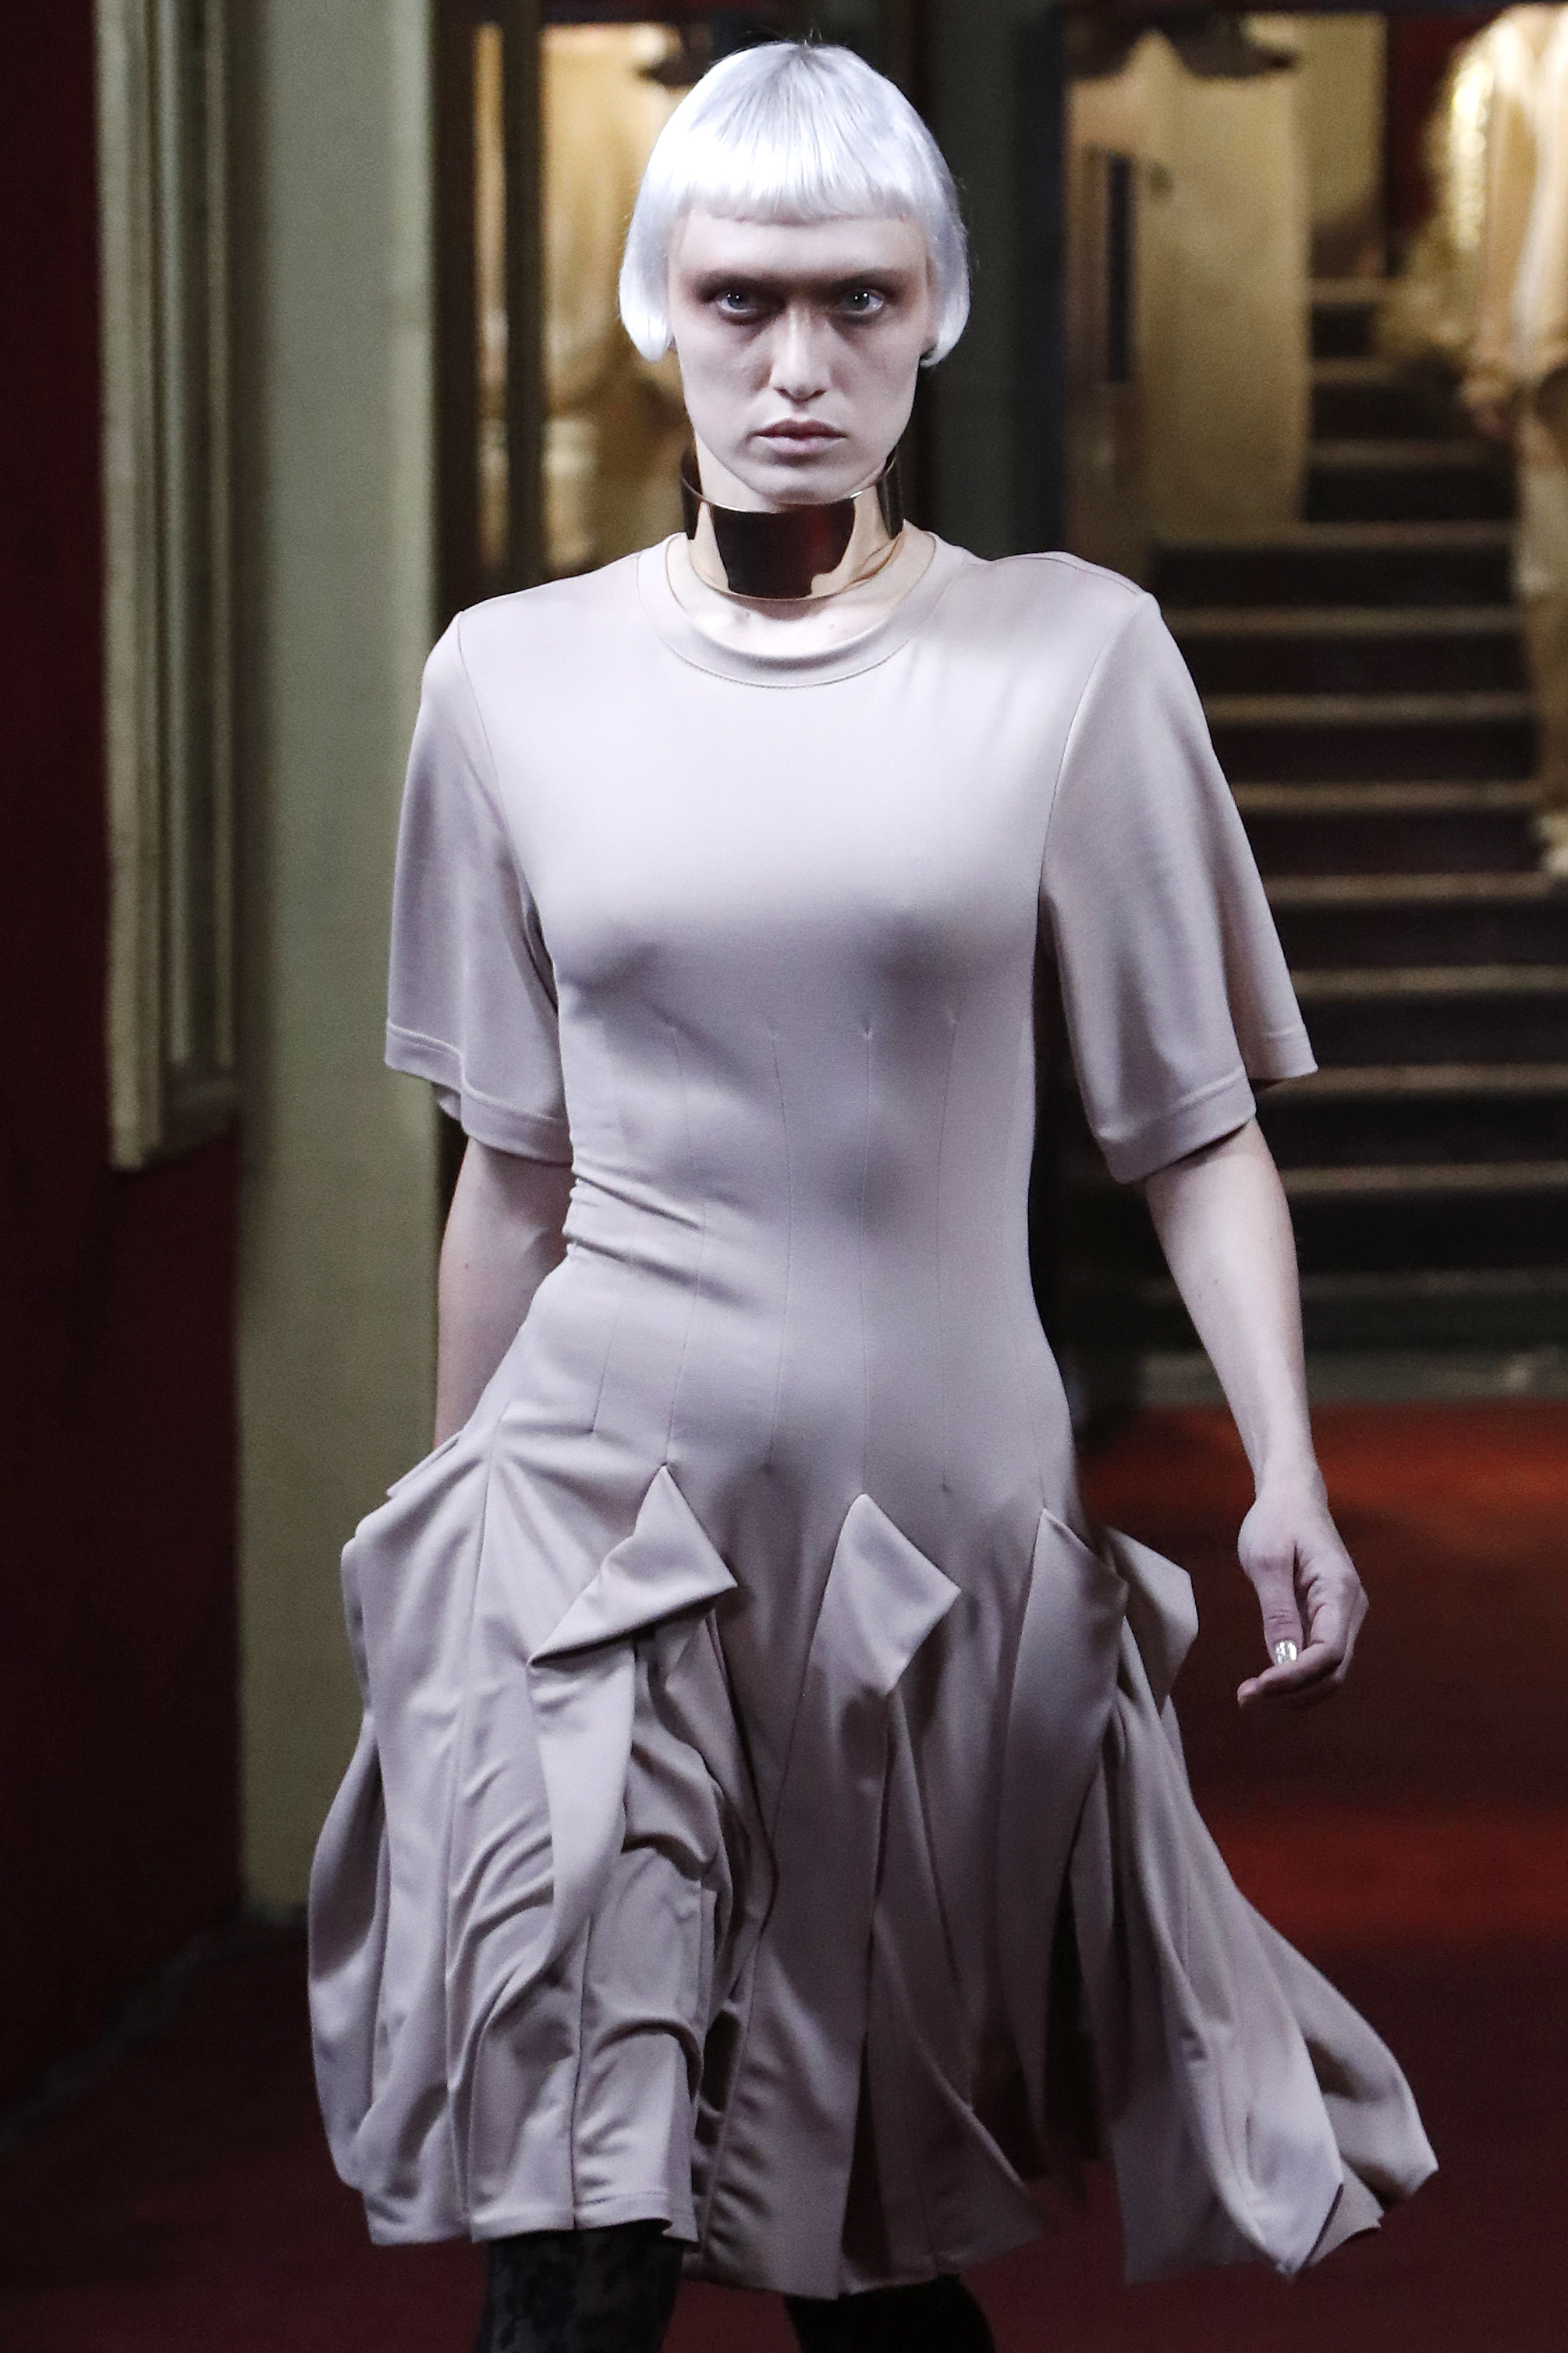 A model presents a creation for Koche during the 2018/2019 fall/winter collection fashion show on February 27, 2018 in Paris. / AFP PHOTO / FRANCOIS GUILLOT